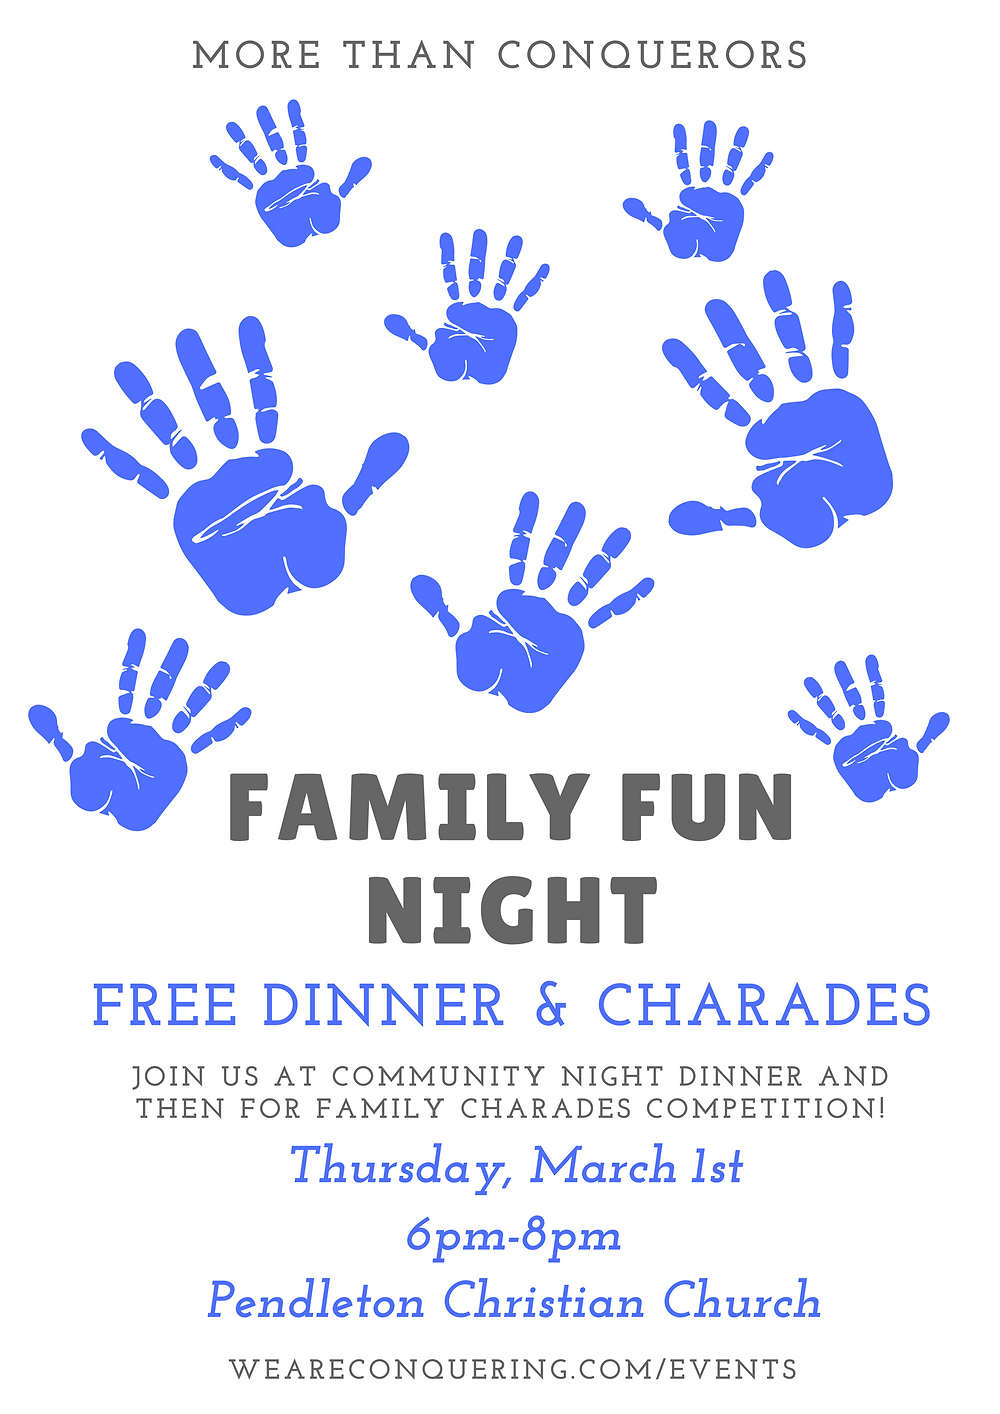 Open to all MTC community families!